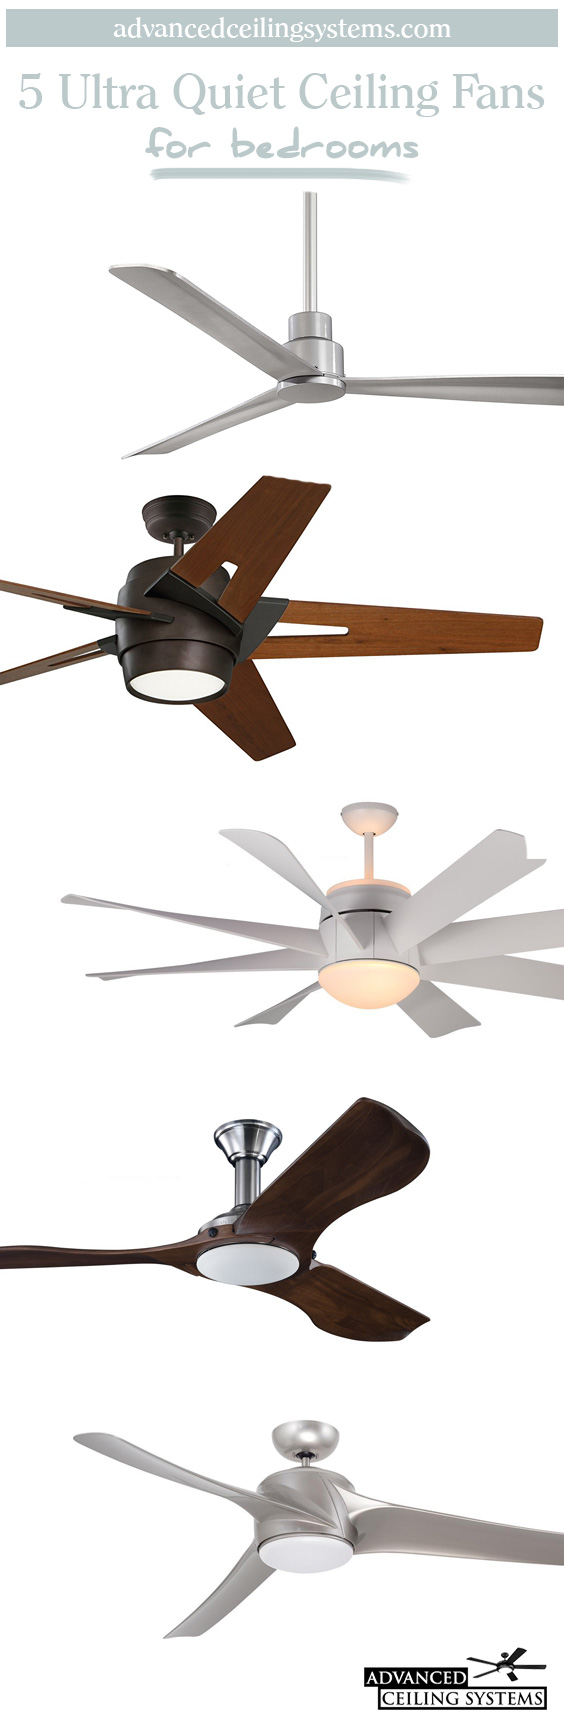 5 Quietest Ceiling Fans Available Right Now Decorating - Quietest Ceiling Fan